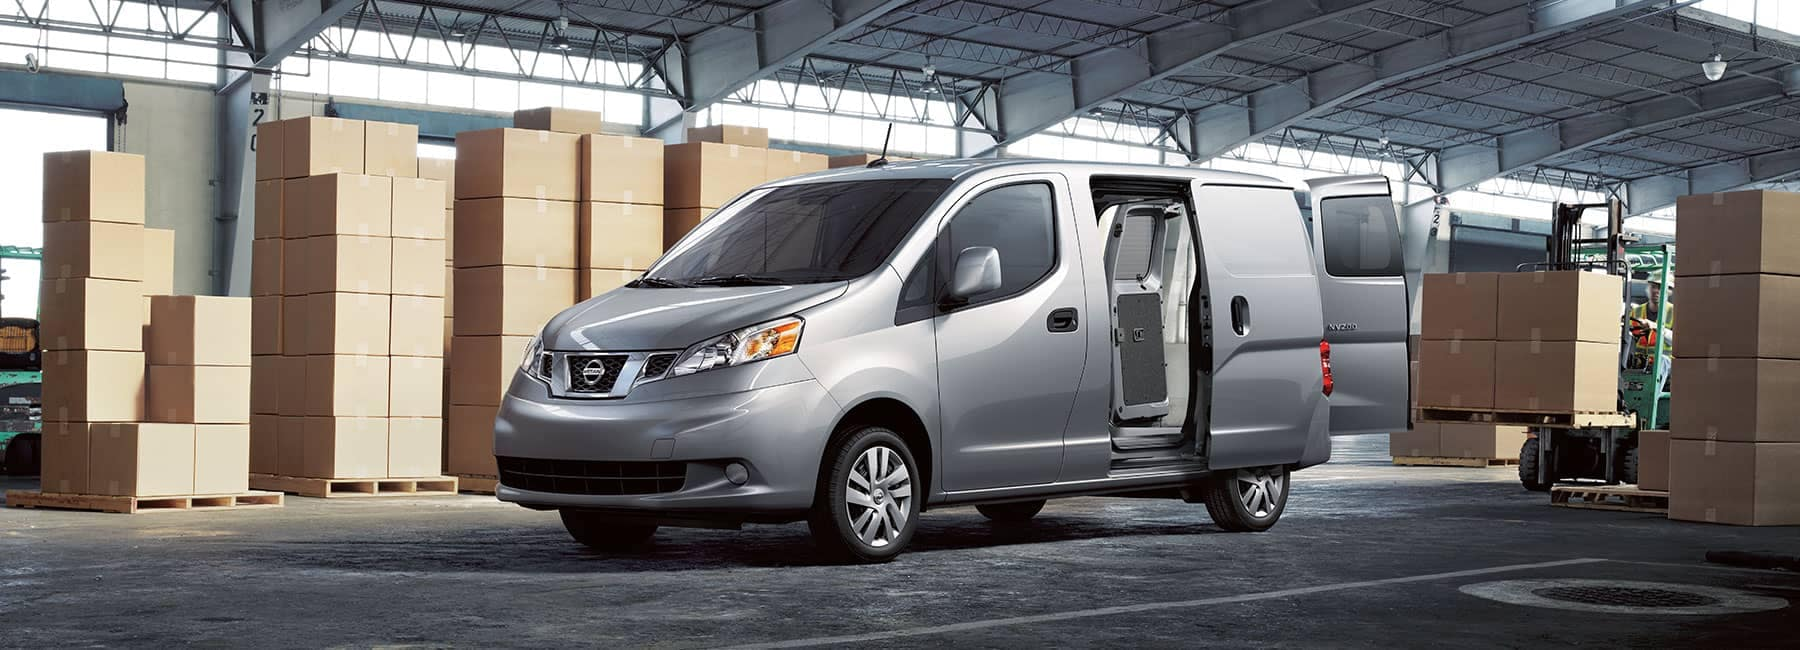 Grey-NV200-in-a-warehouse